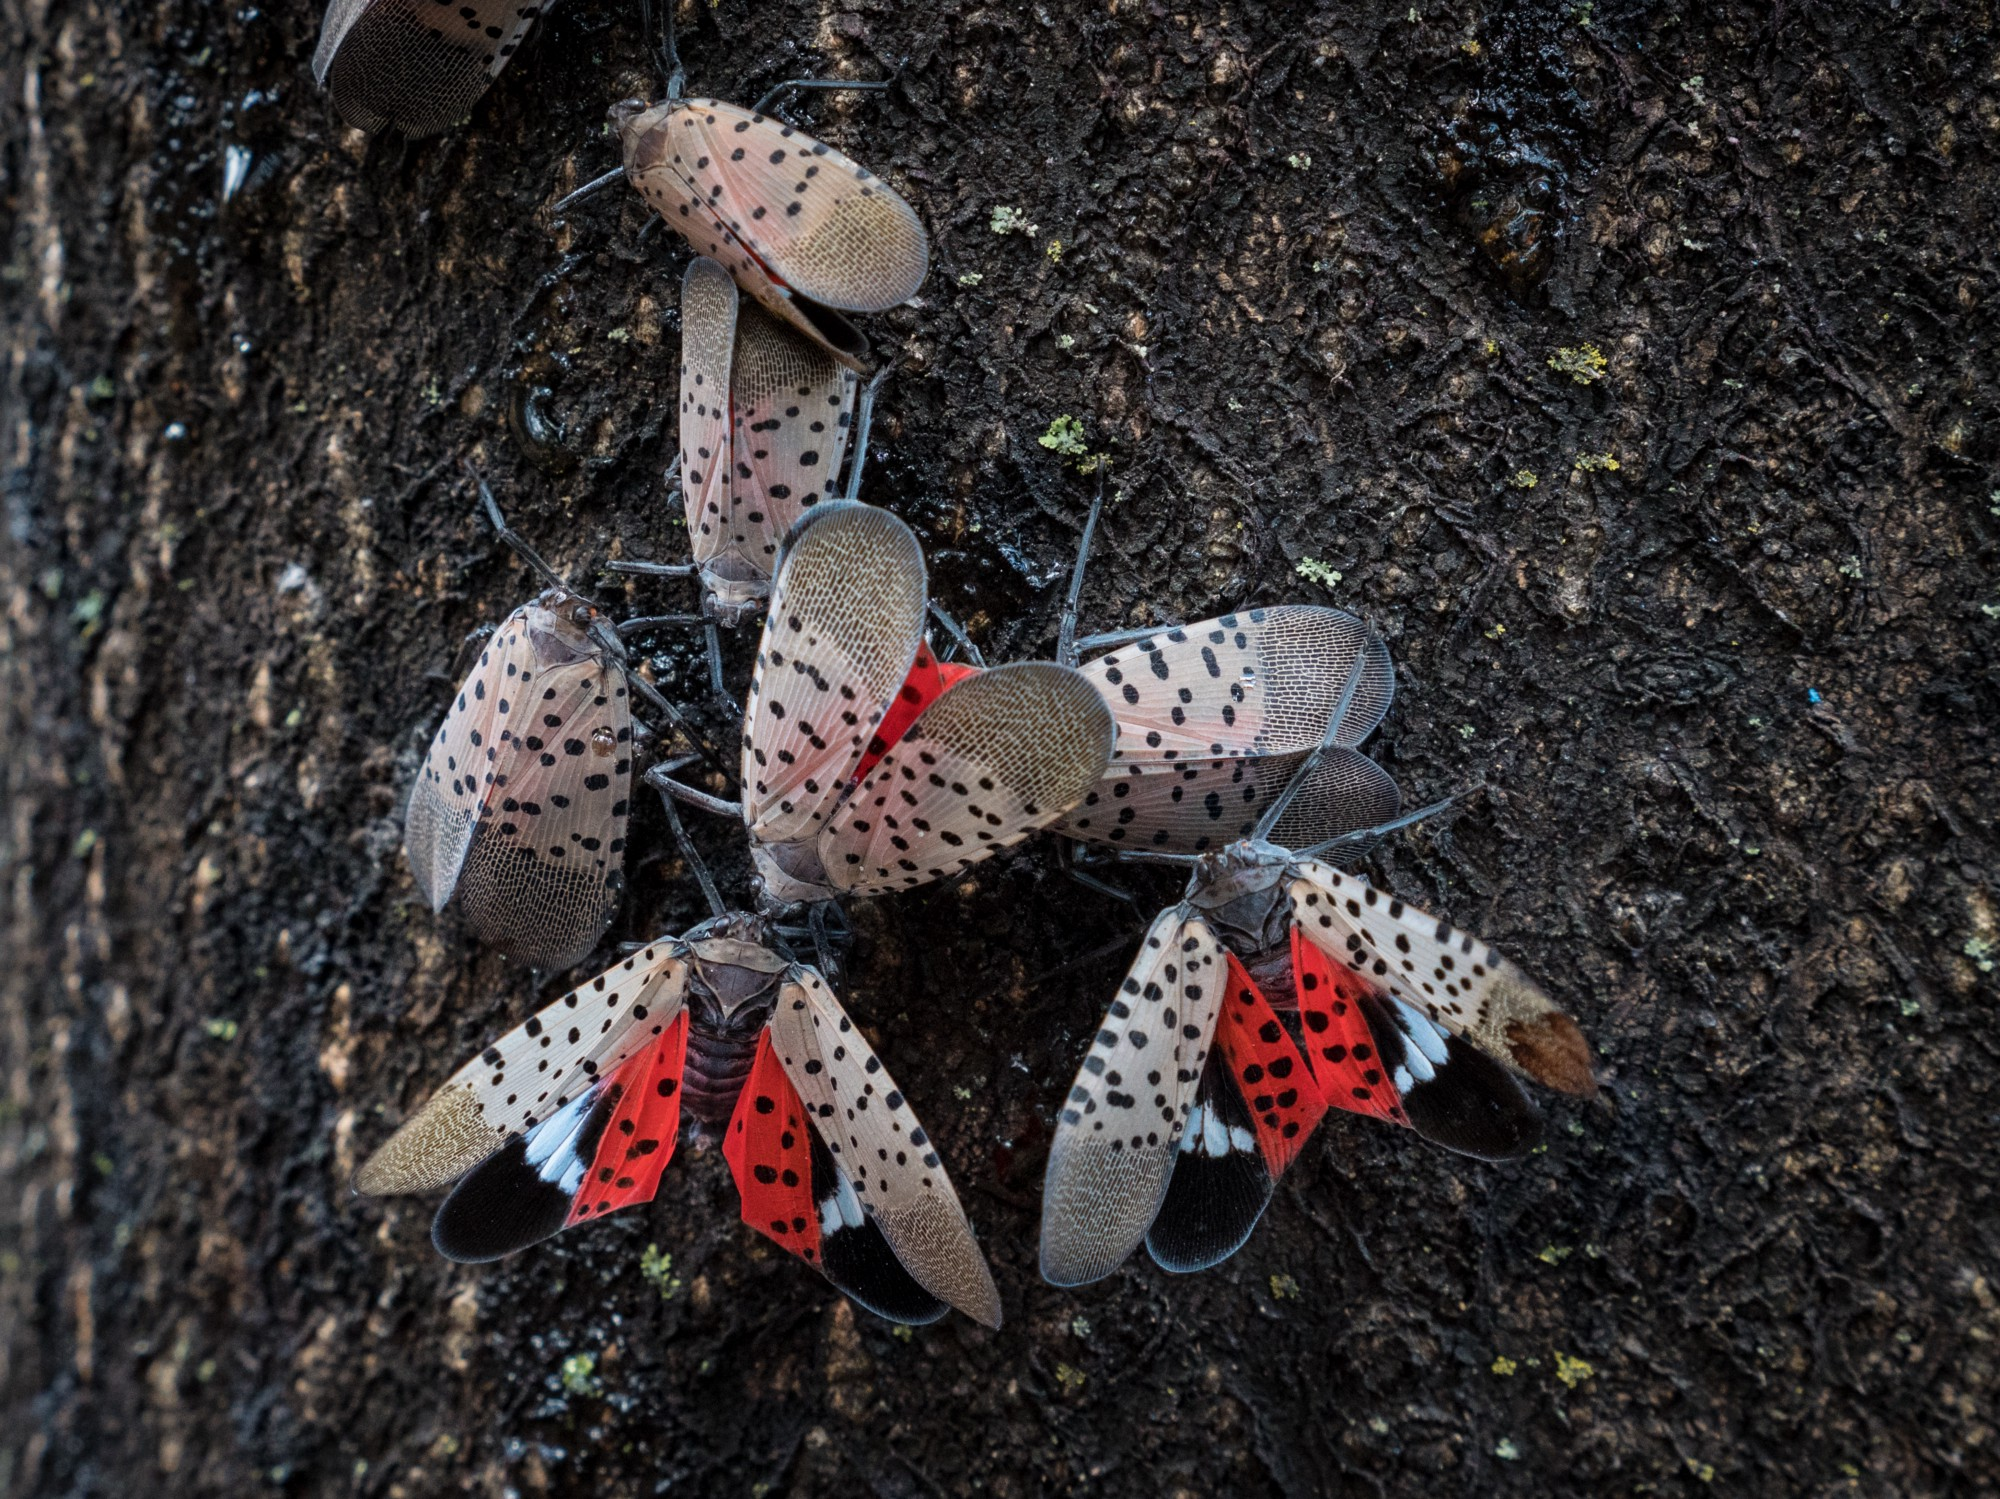 Seven spotted insects, three with outstretched wings showing a bright red interior